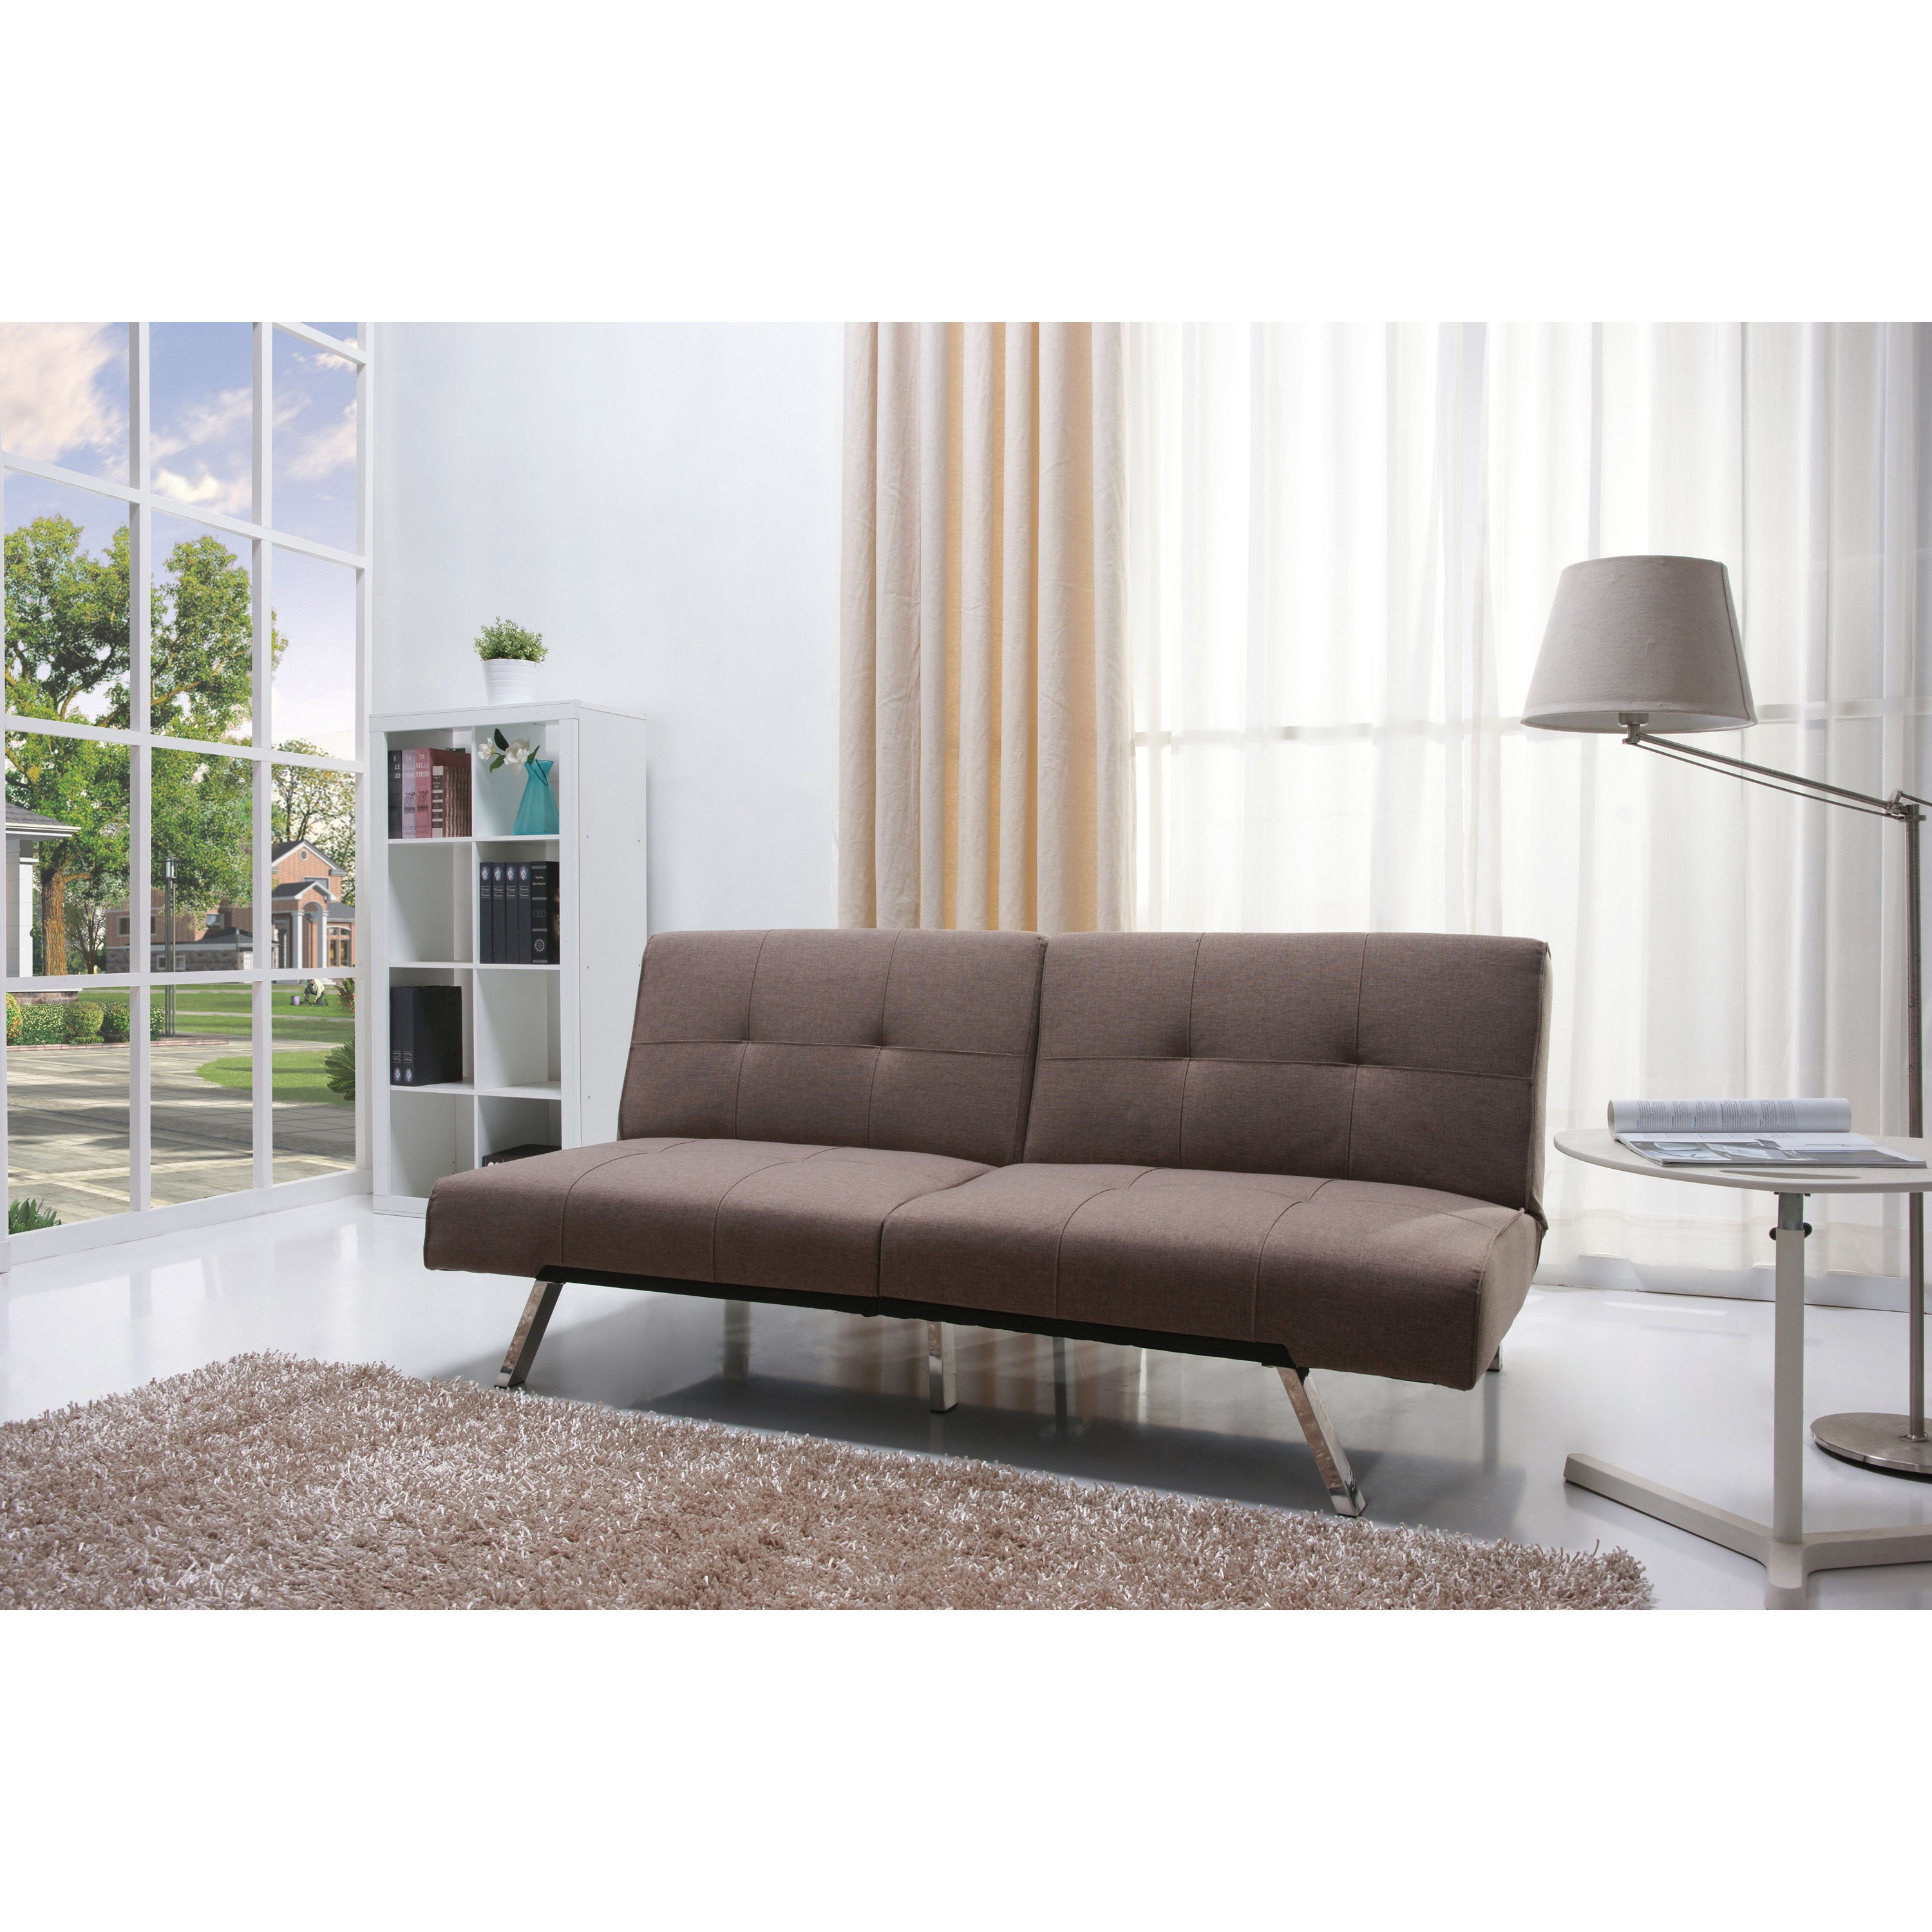 Jacksonville Mocha Fabric Futon Sofa Bed at Sears.com